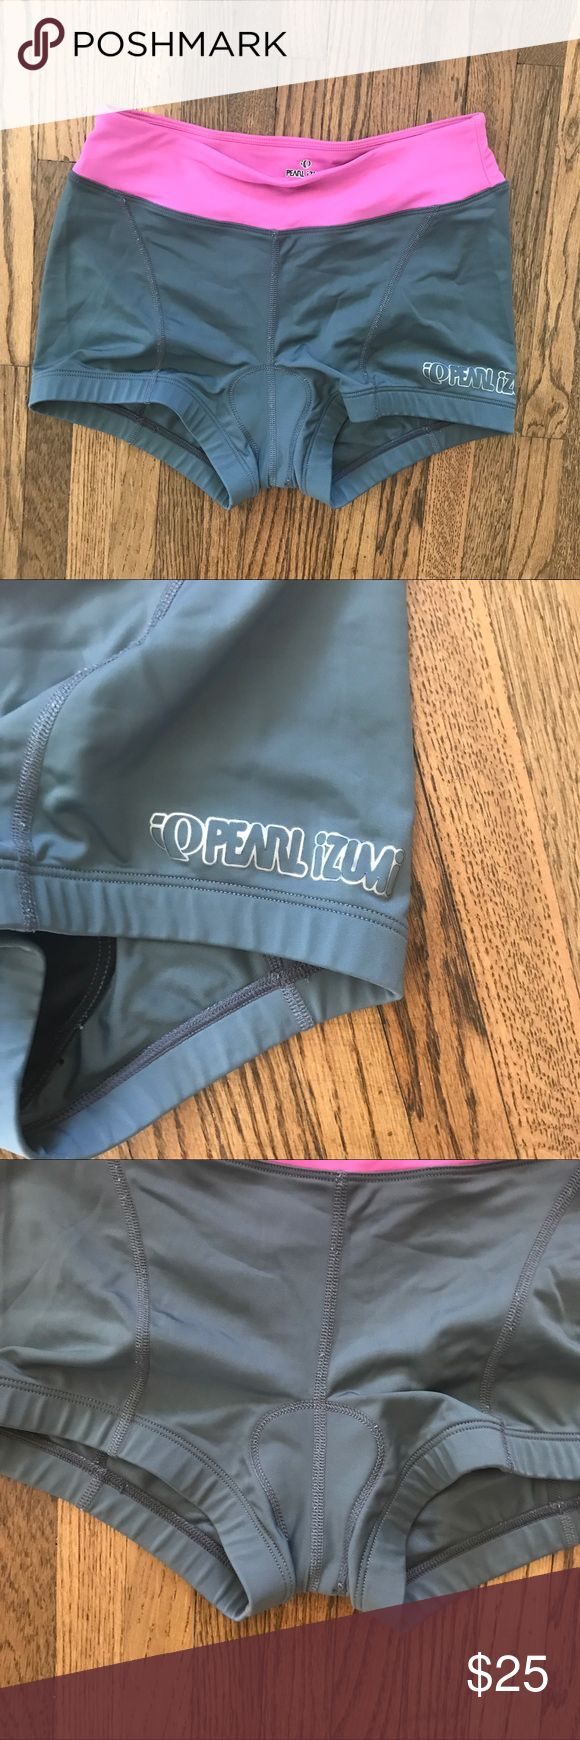 Triathlon shorts Pearl Izumi padded shorts for triathlons, cycling and spinning. Extra shorty length. Great condition. 🚫 no trades Pearl Izumi Shorts